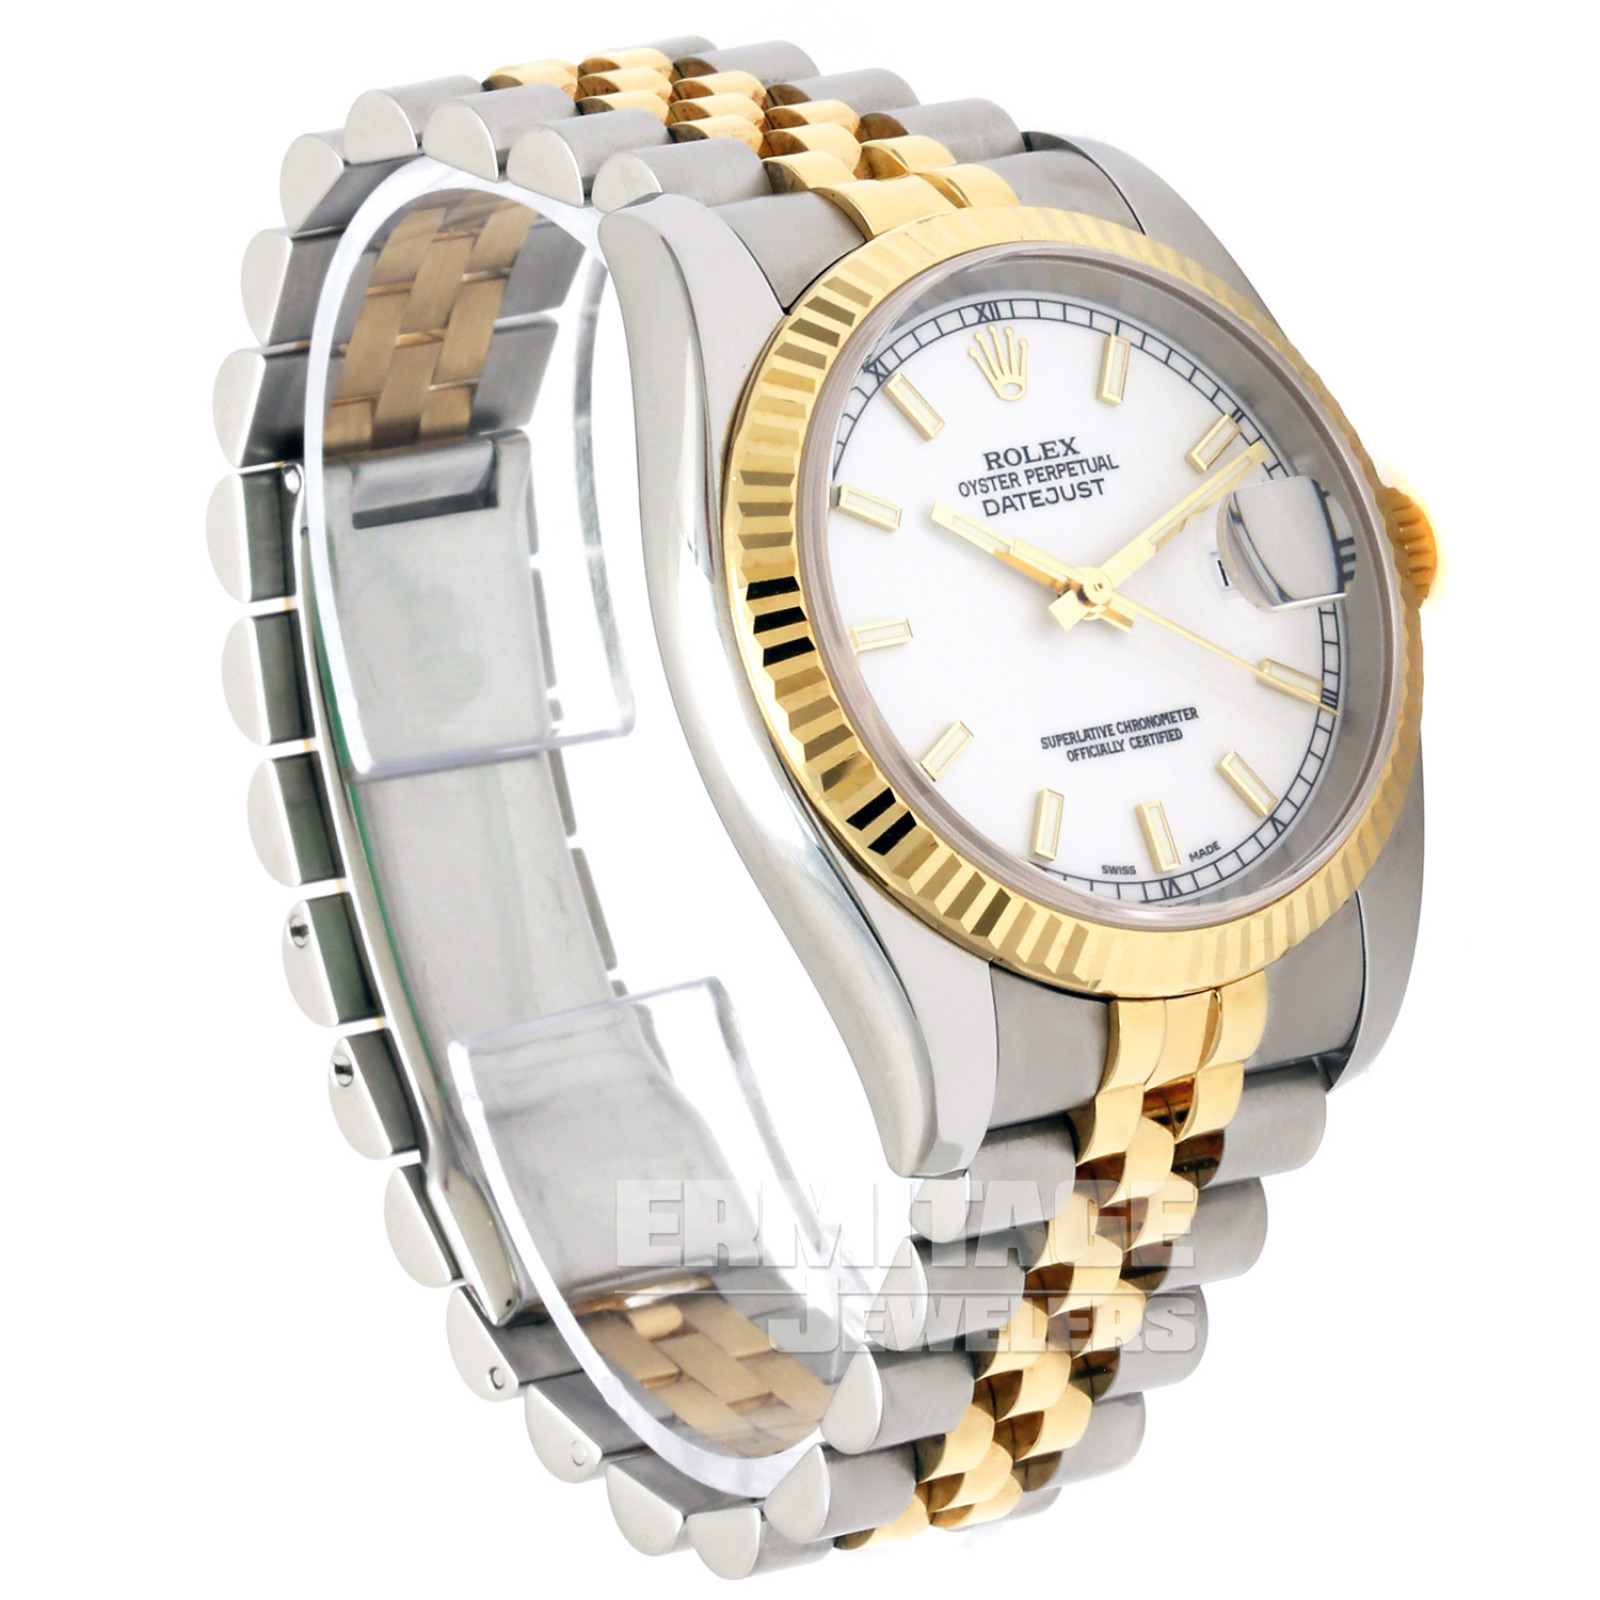 Sell Rolex Datejust 116233 with White Dial